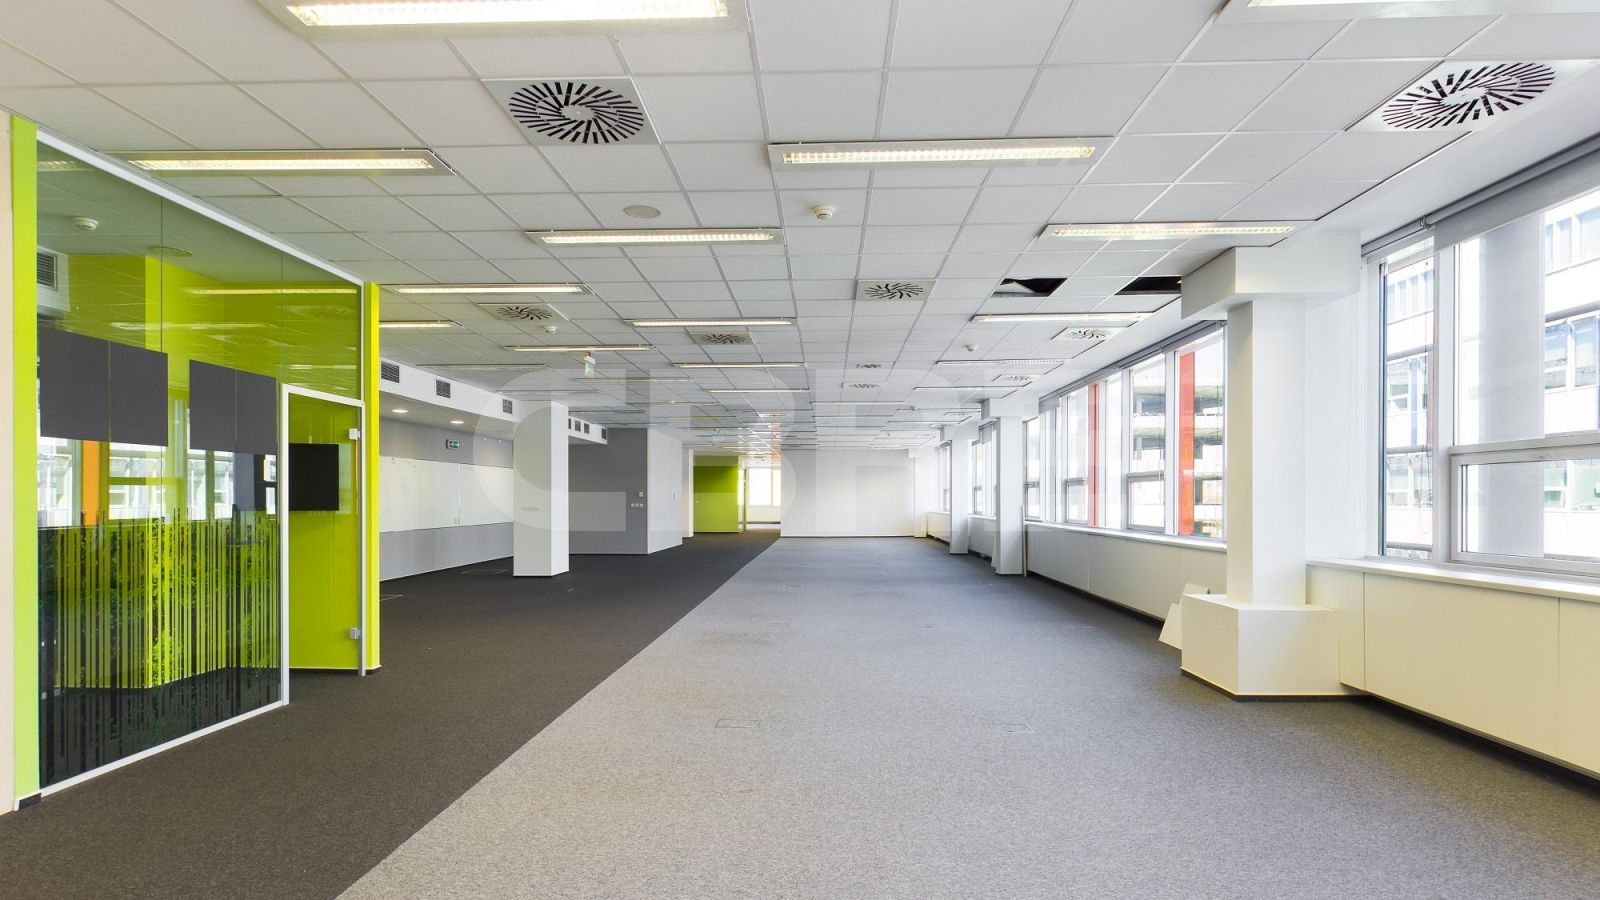 Green Point Offices - Block F+G, Bratislava - Ružinov | Offices for rent by CBRE | 3